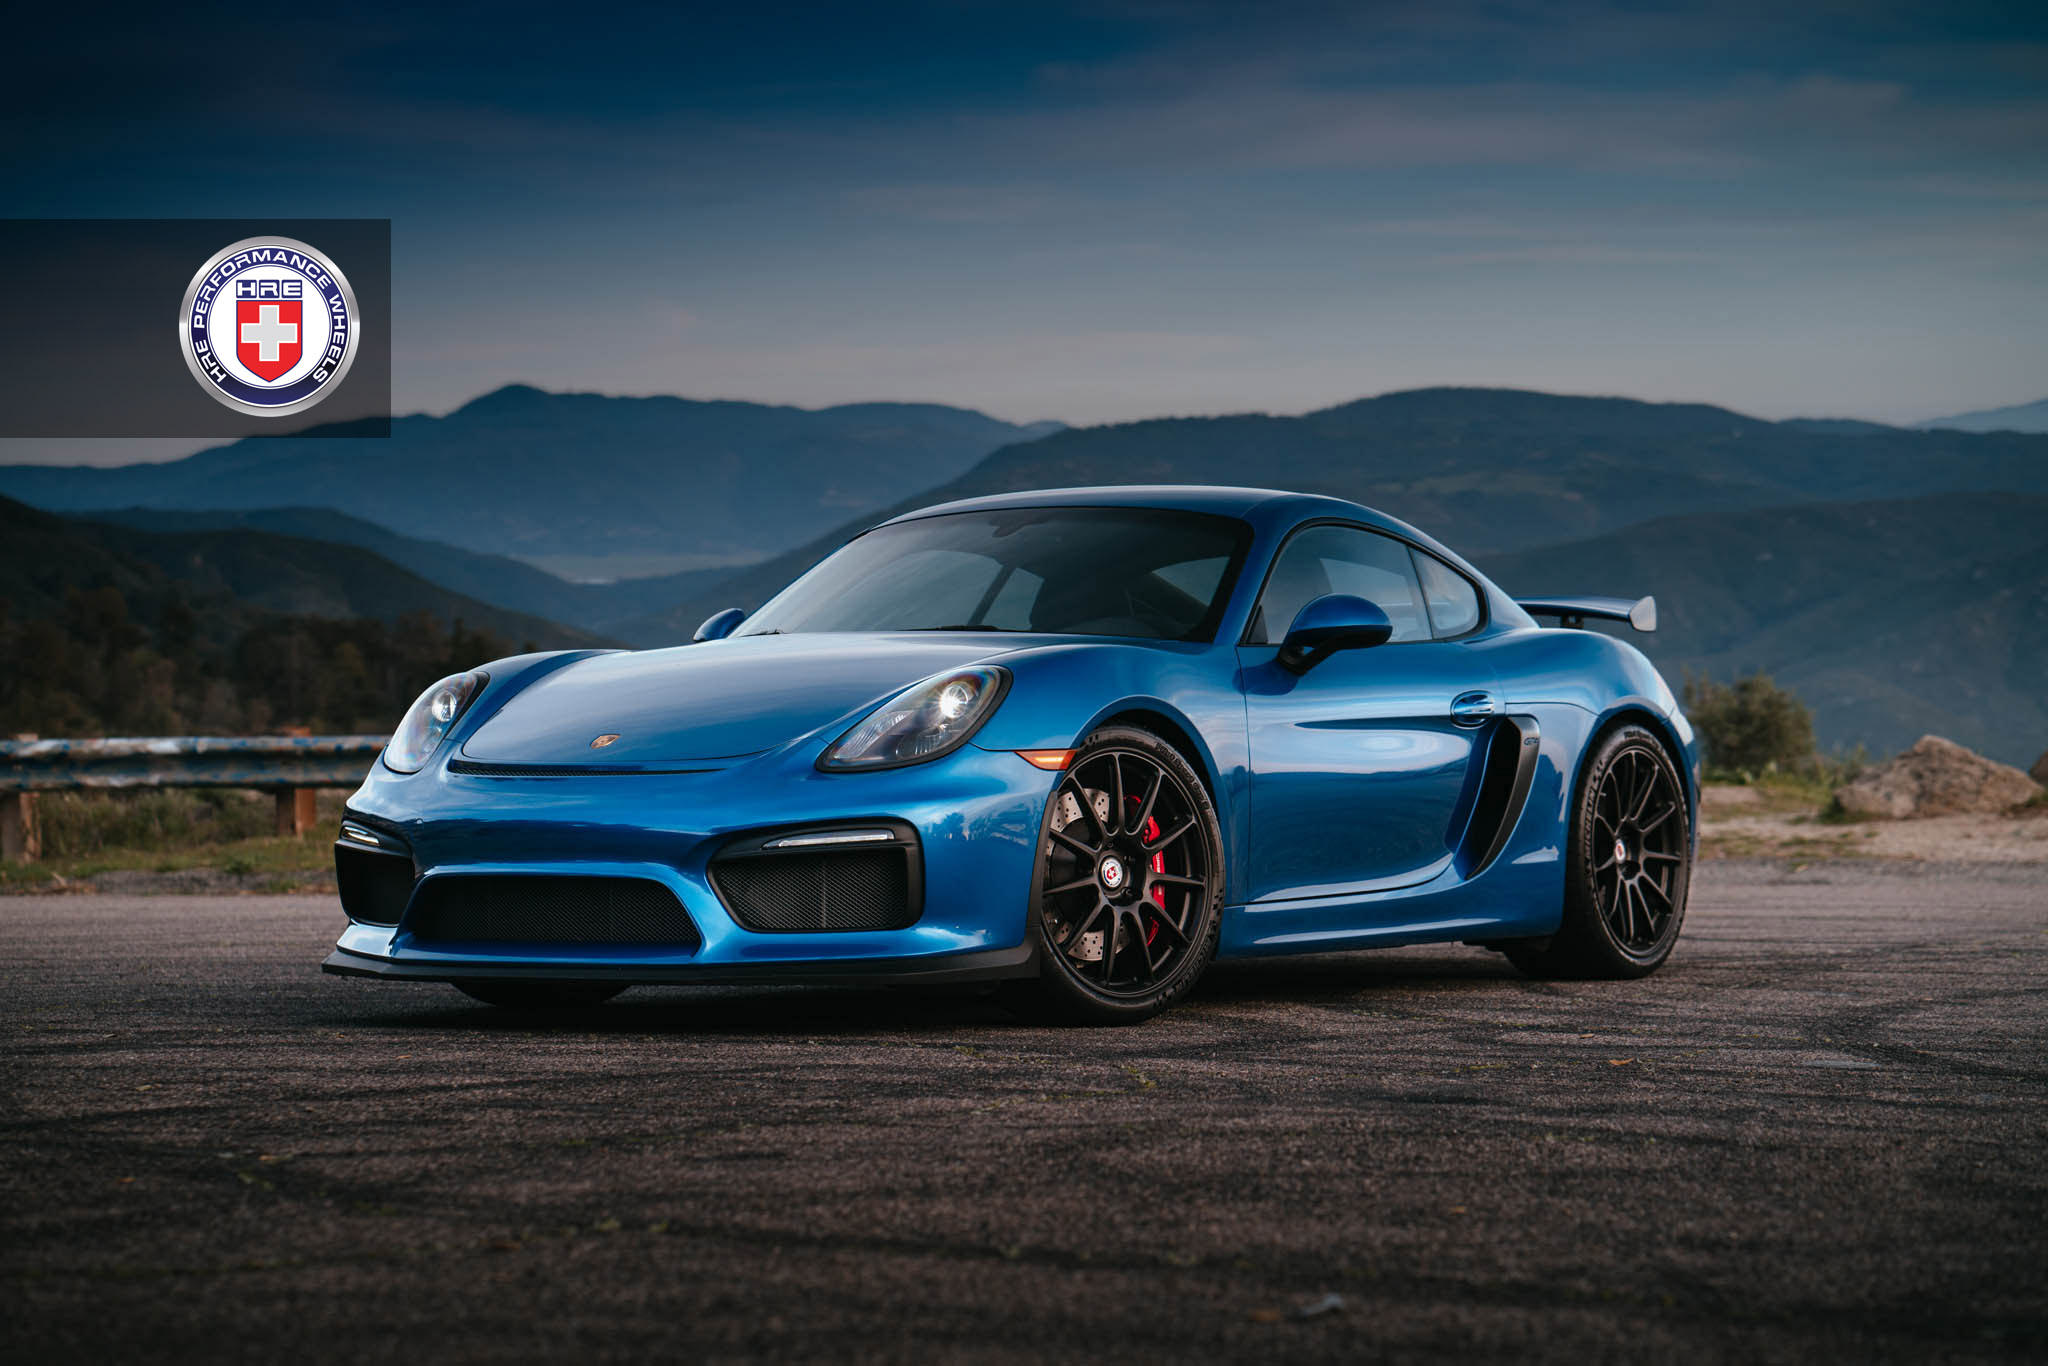 Porsche Cayman Gt4 Gets Stylish With The Satin Black Hre